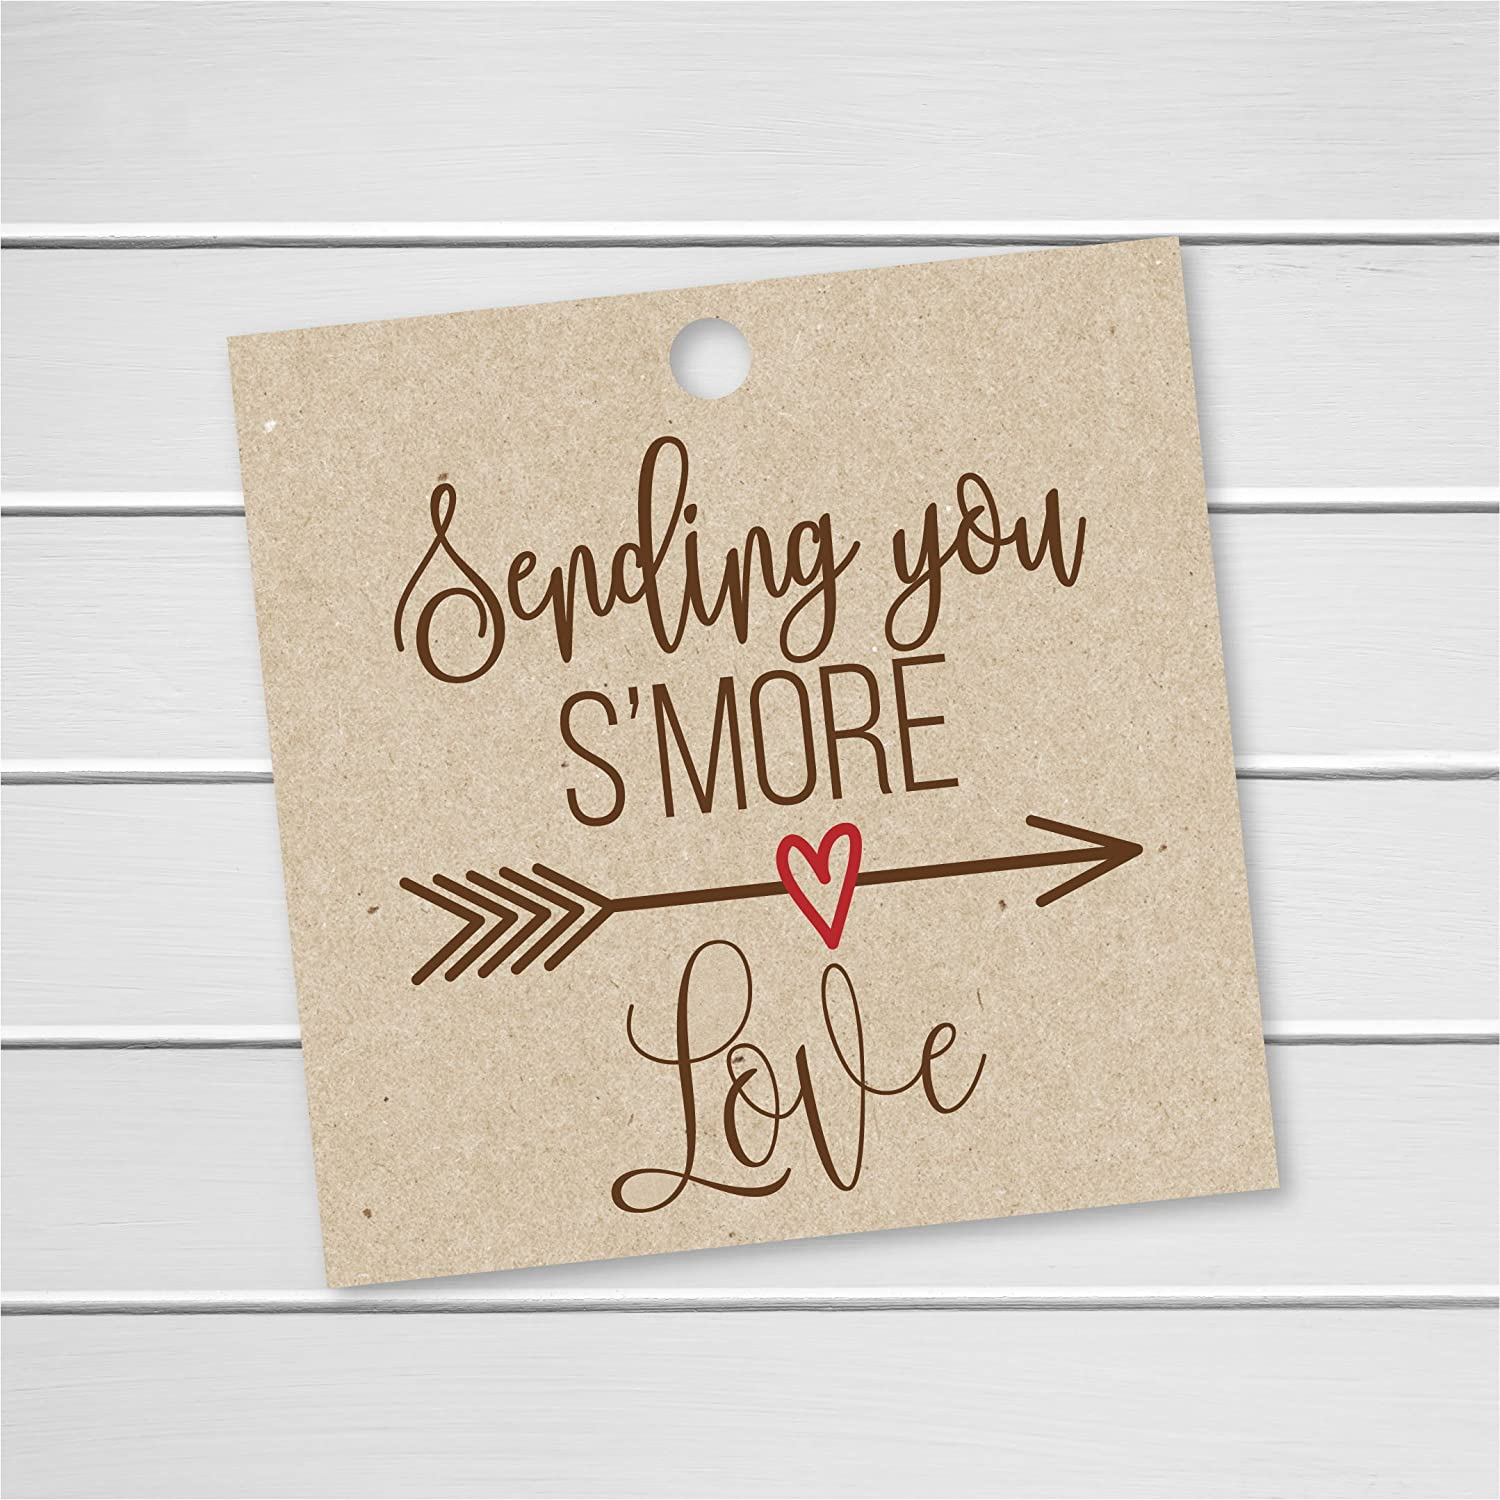 24 S'More Love Tags, Kraft Wedding Favor Tags for Smores, Sending you S'More Love (SQ-181) 24 S'More Love Tags